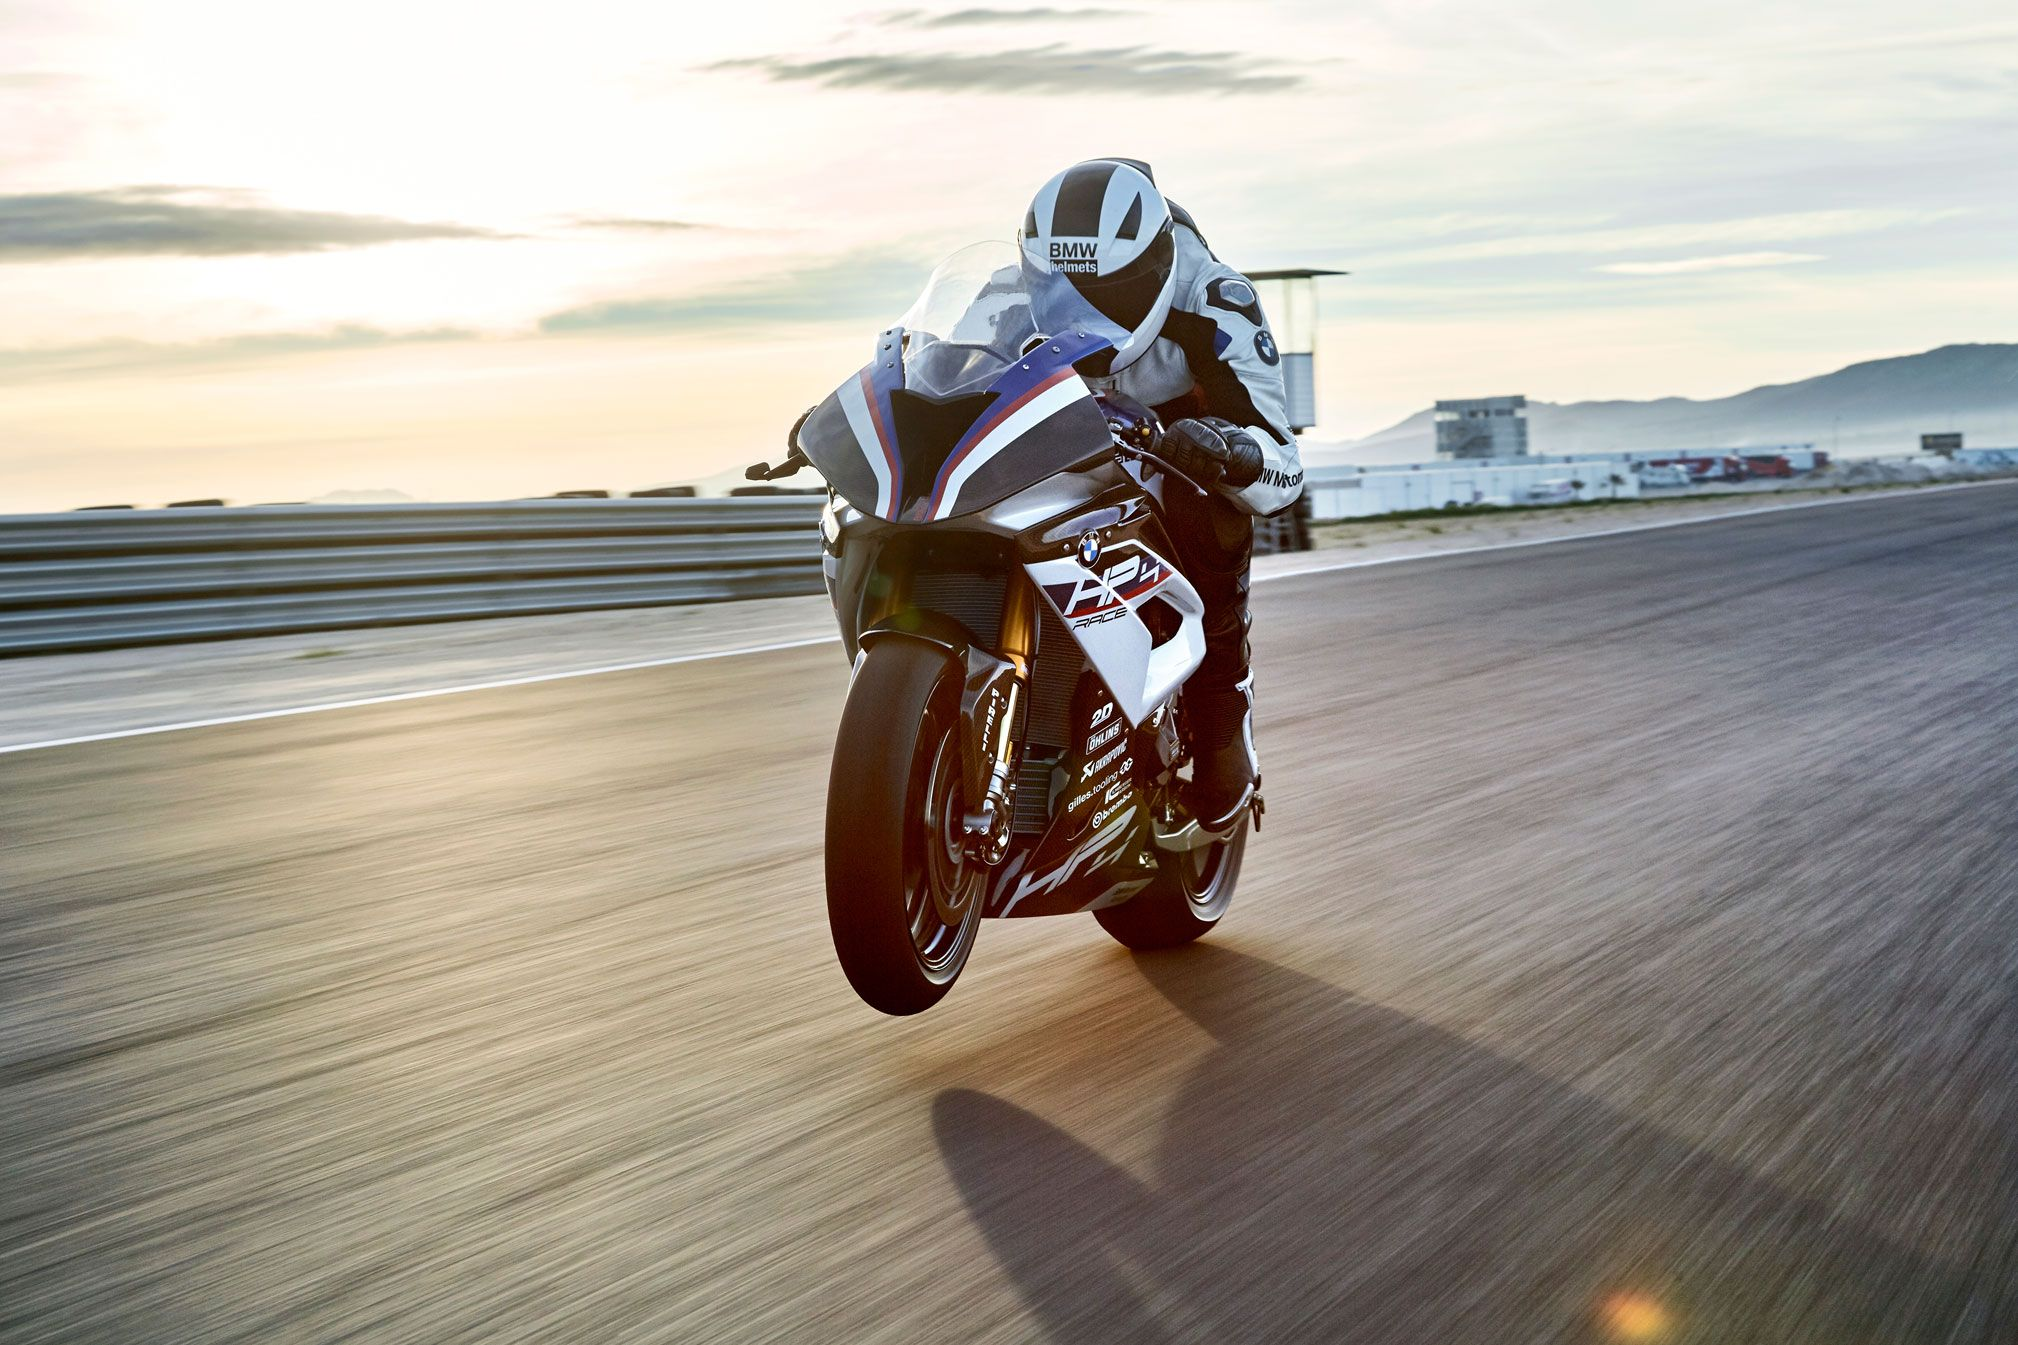 2018 BMW HP4 Race Makes Its U.S. Debut At 13th Annual